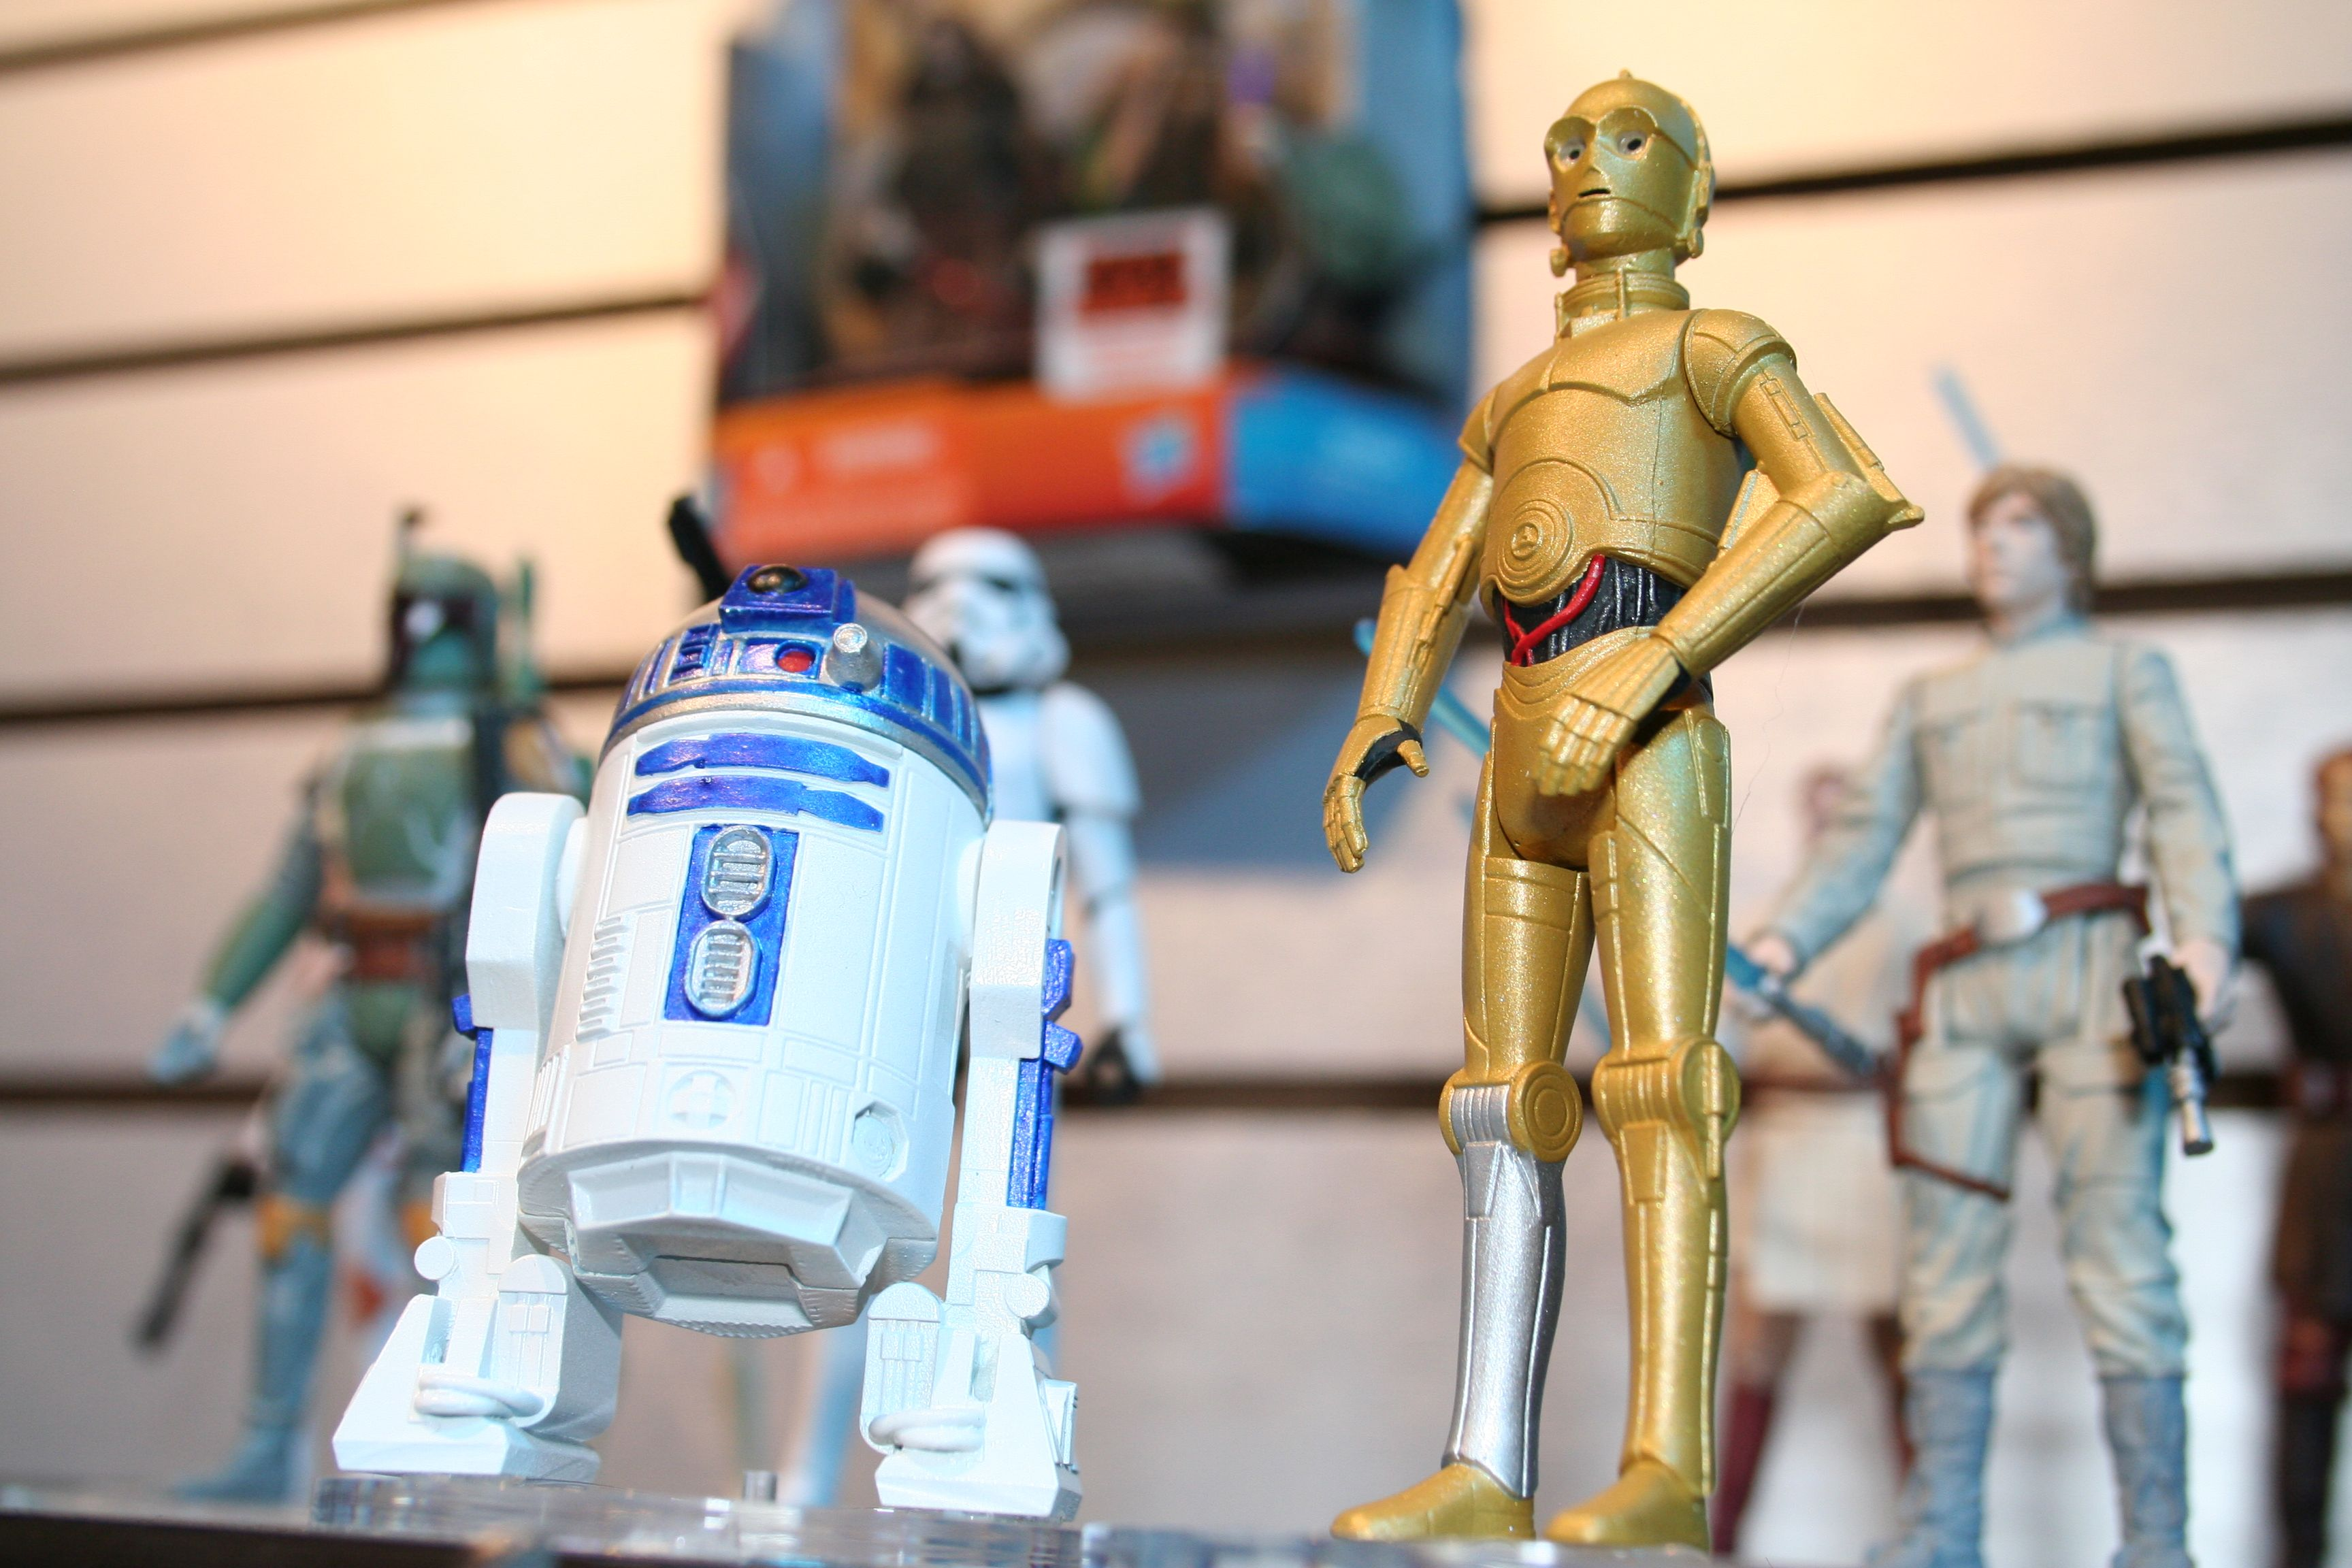 STAR WARS and STAR WARS REBELS Toys and Action Figure ...